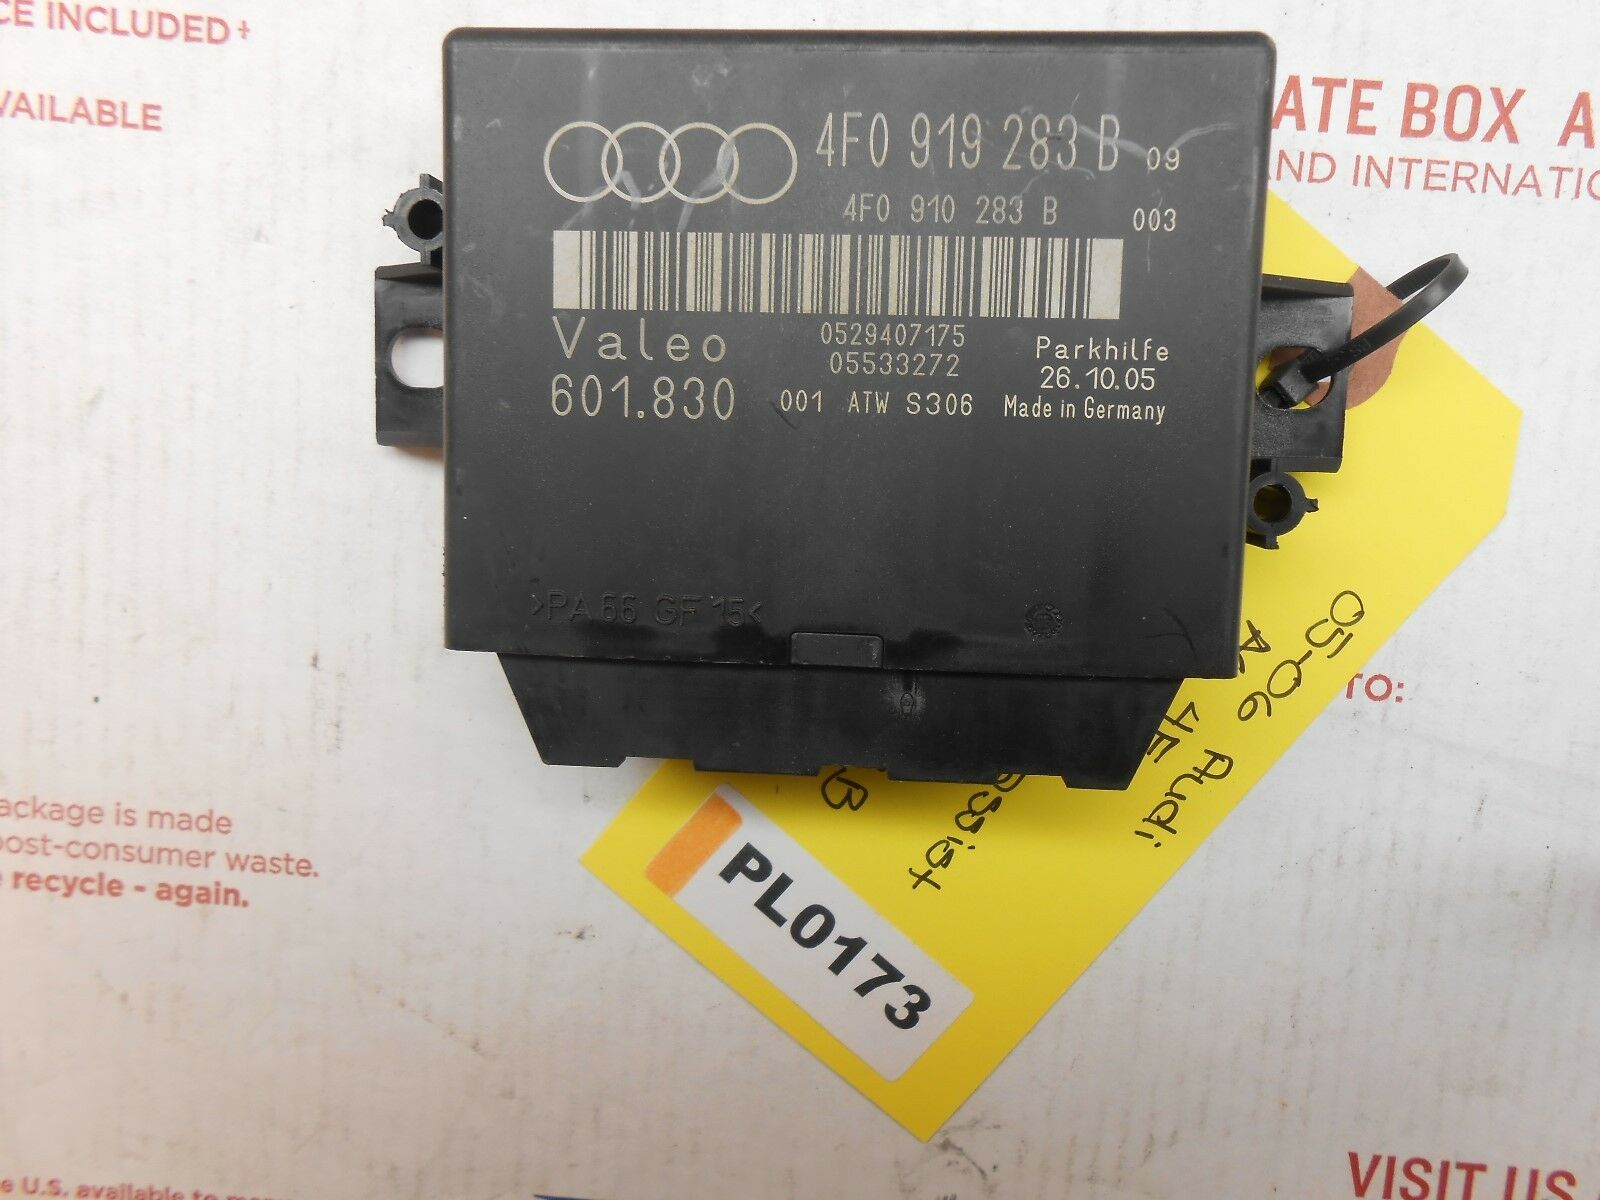 Used Audi A6 Controllers For Sale Fuse Box 2006 2005 4f Park Driver Assist Mod 4f0919283b Pl0173